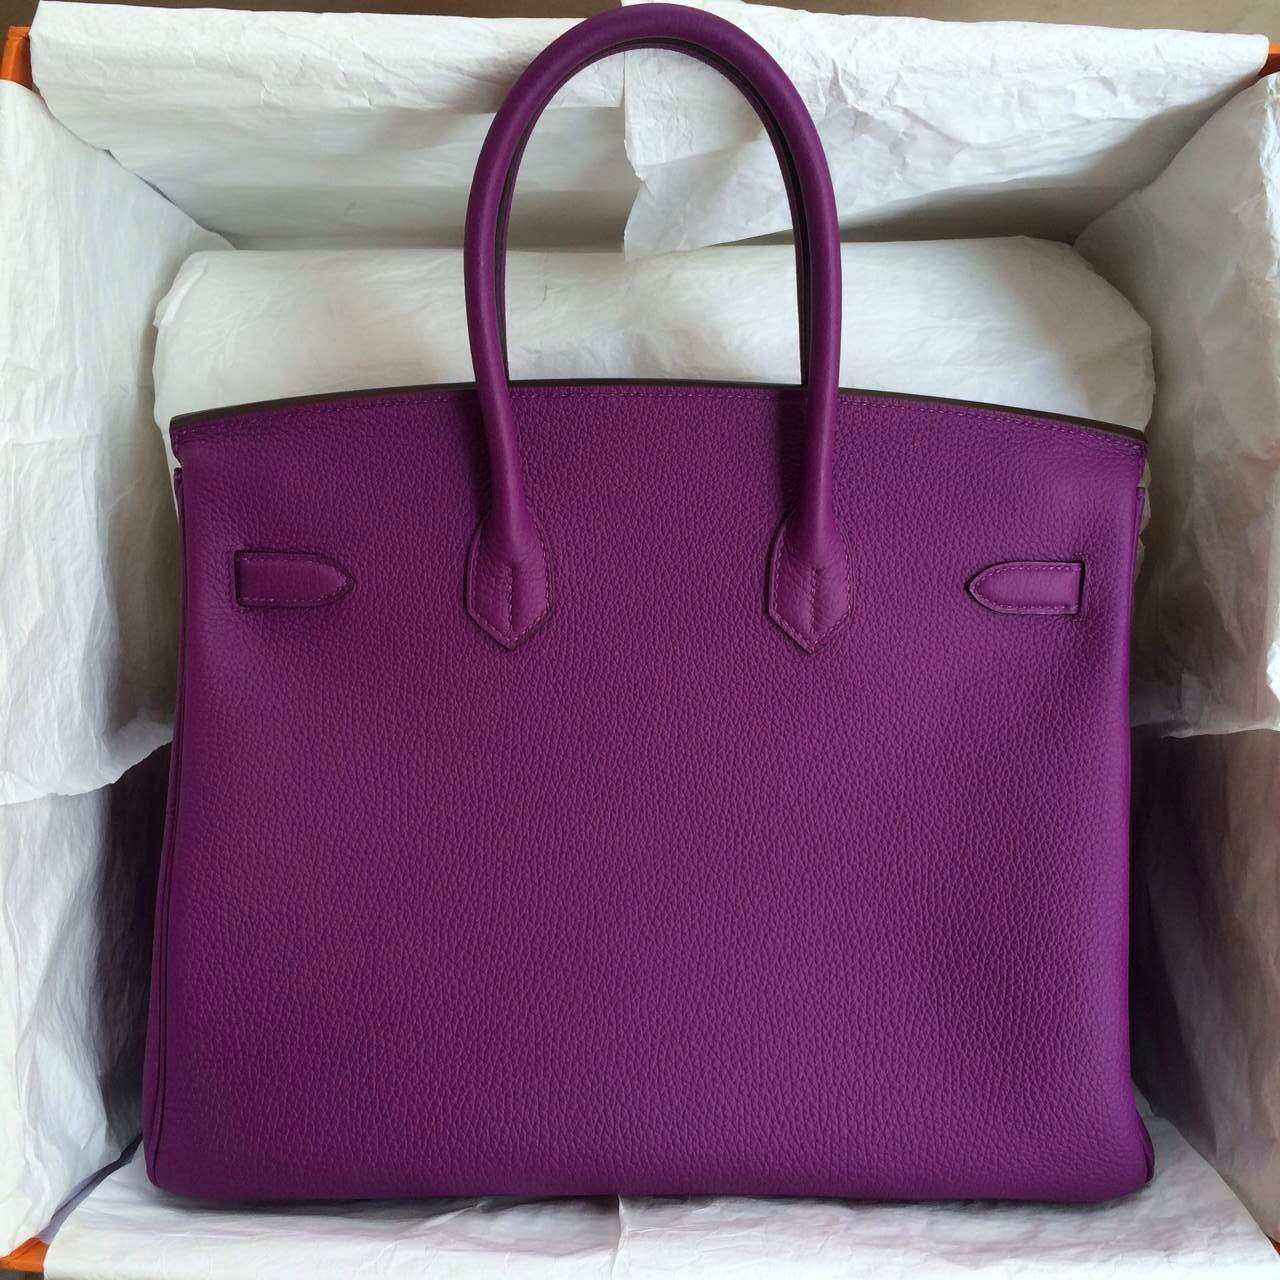 Hermes Birkin Handbag 30cm France Togo Leather P9 Purple Anemone Color